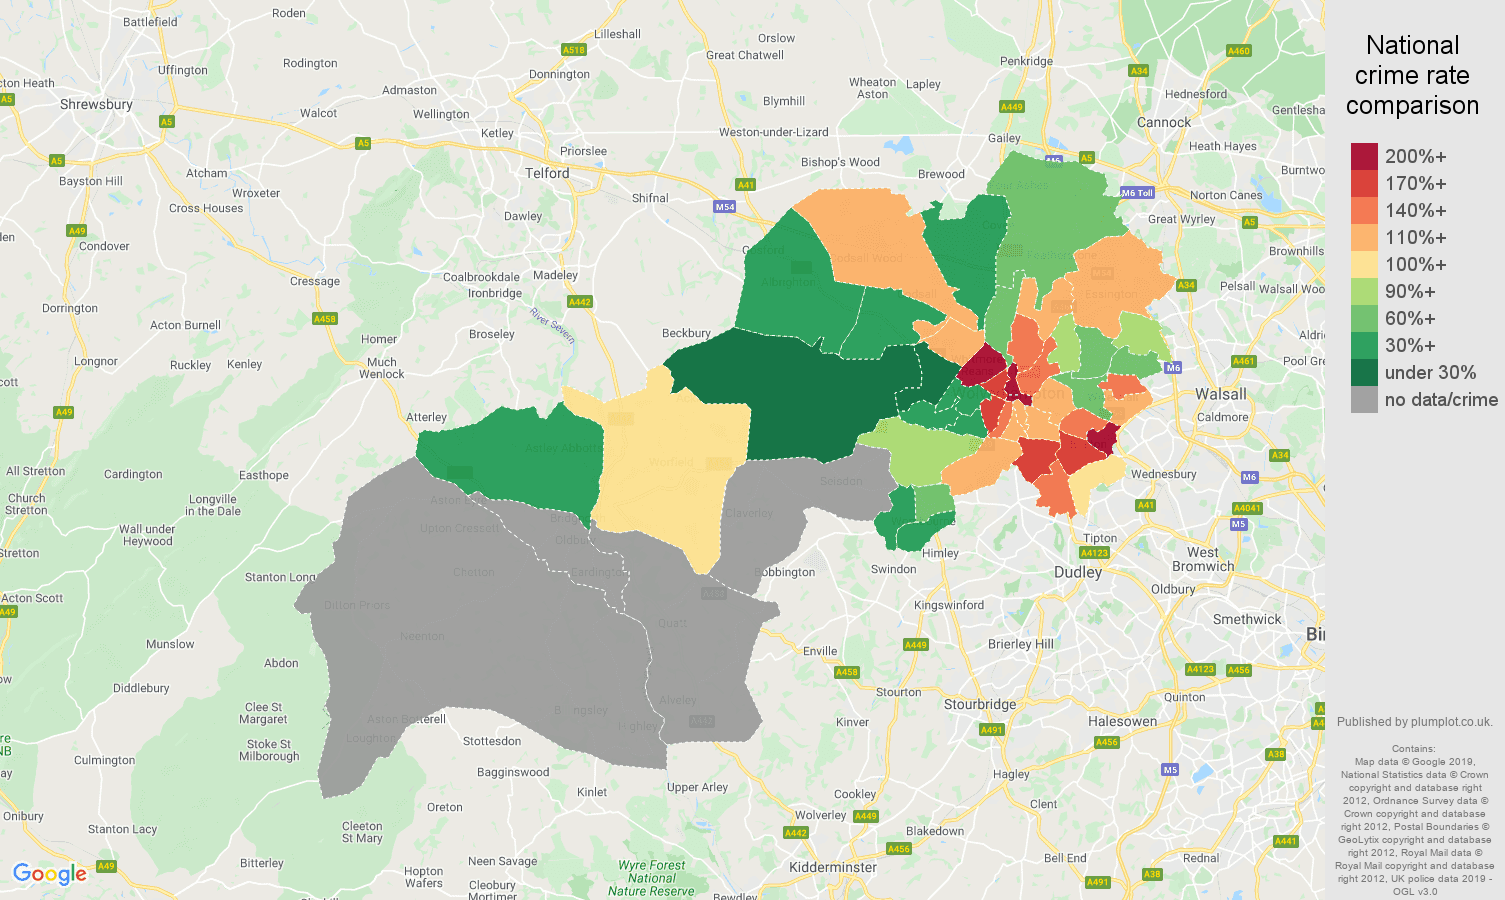 Wolverhampton possession of weapons crime rate comparison map